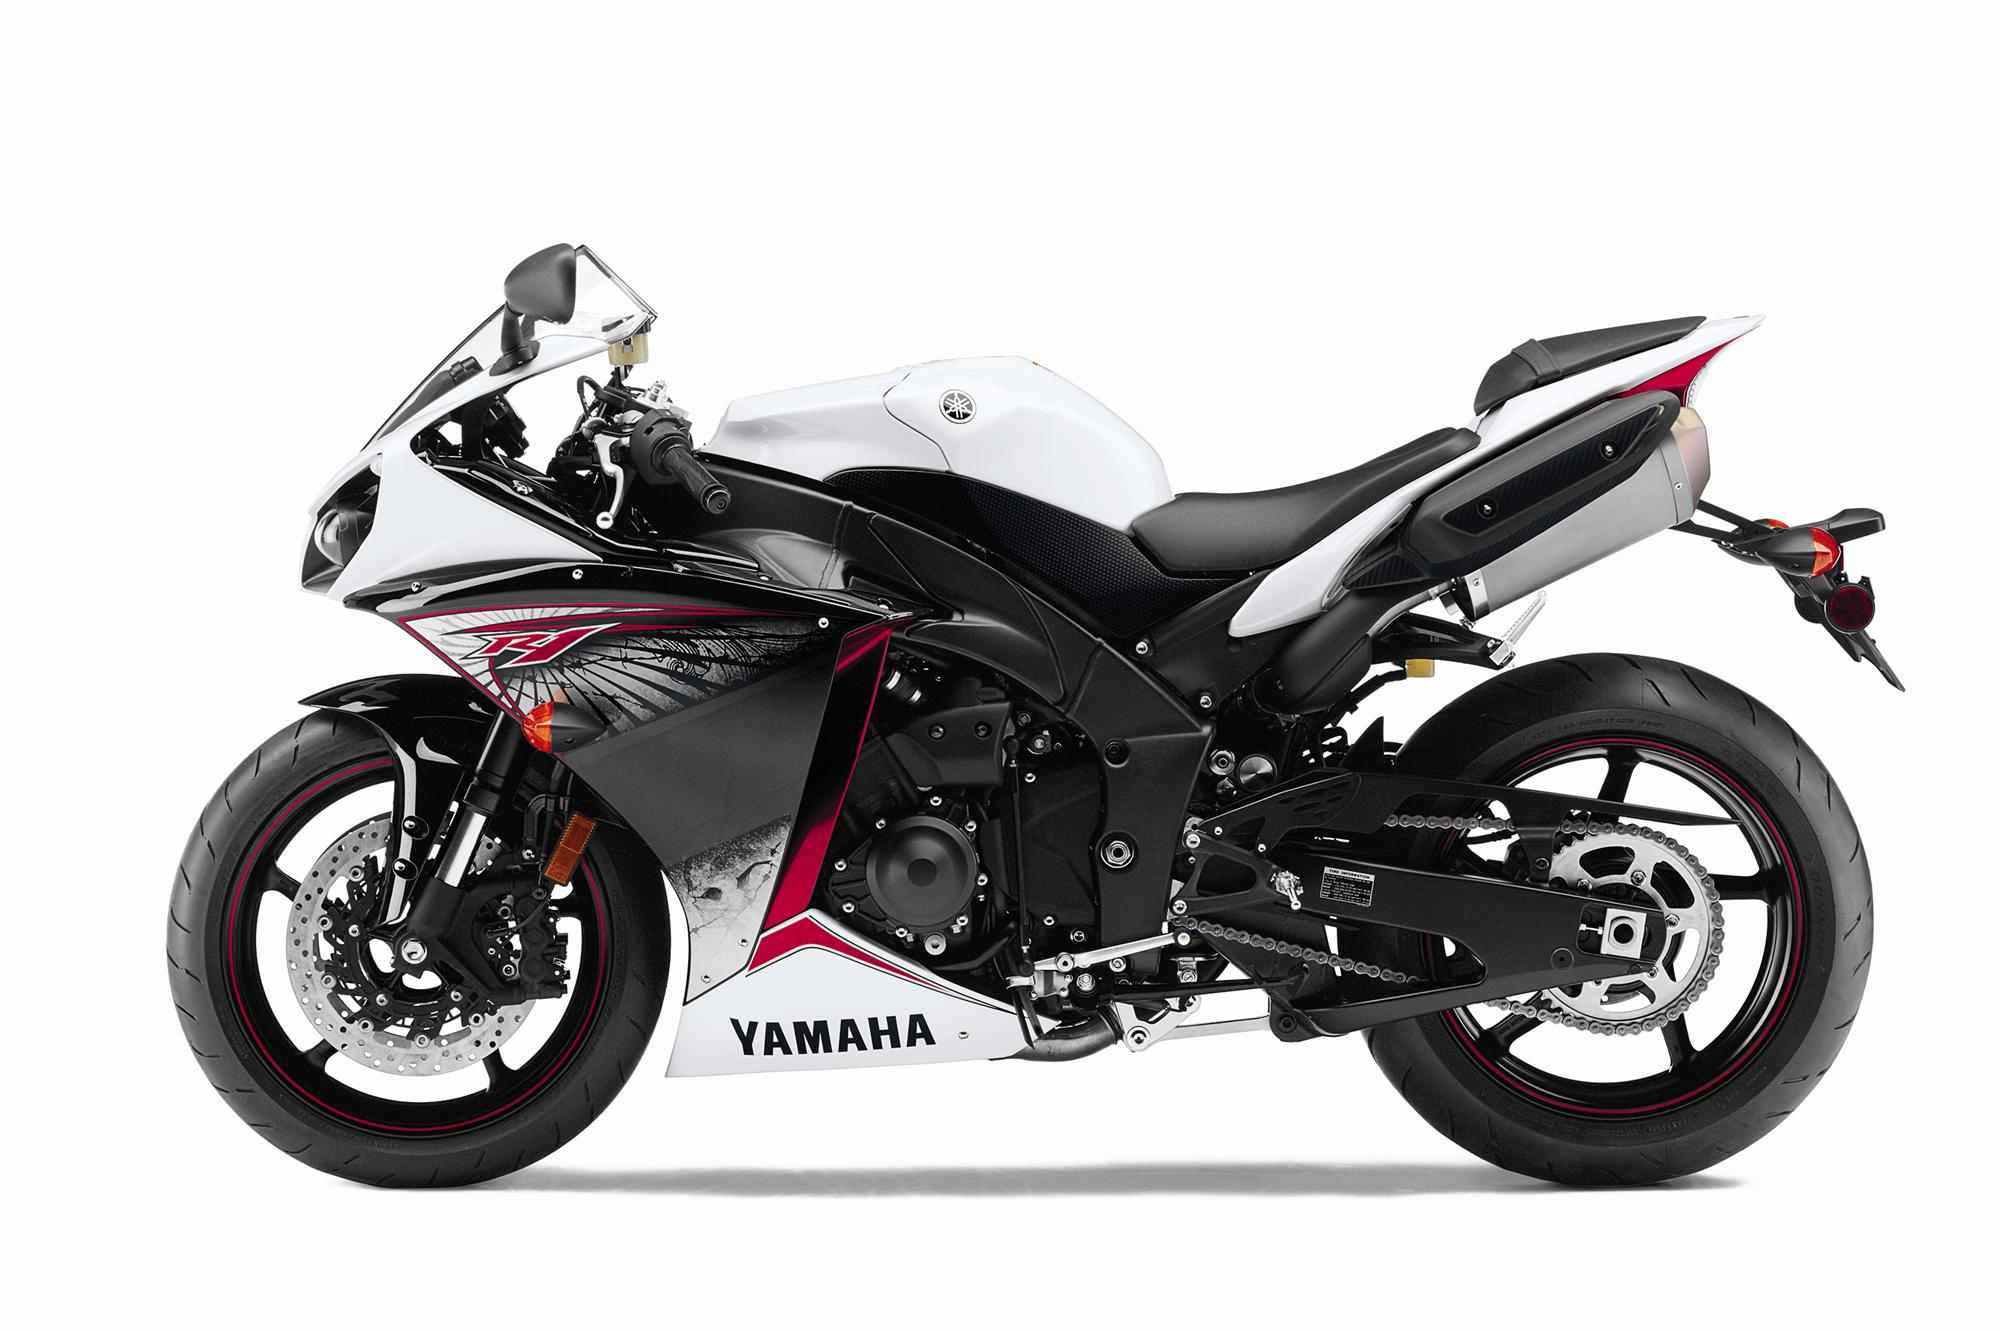 Yamaha yzf - r6 - motorcycles 2012 | 2000 x 1333 | download | close